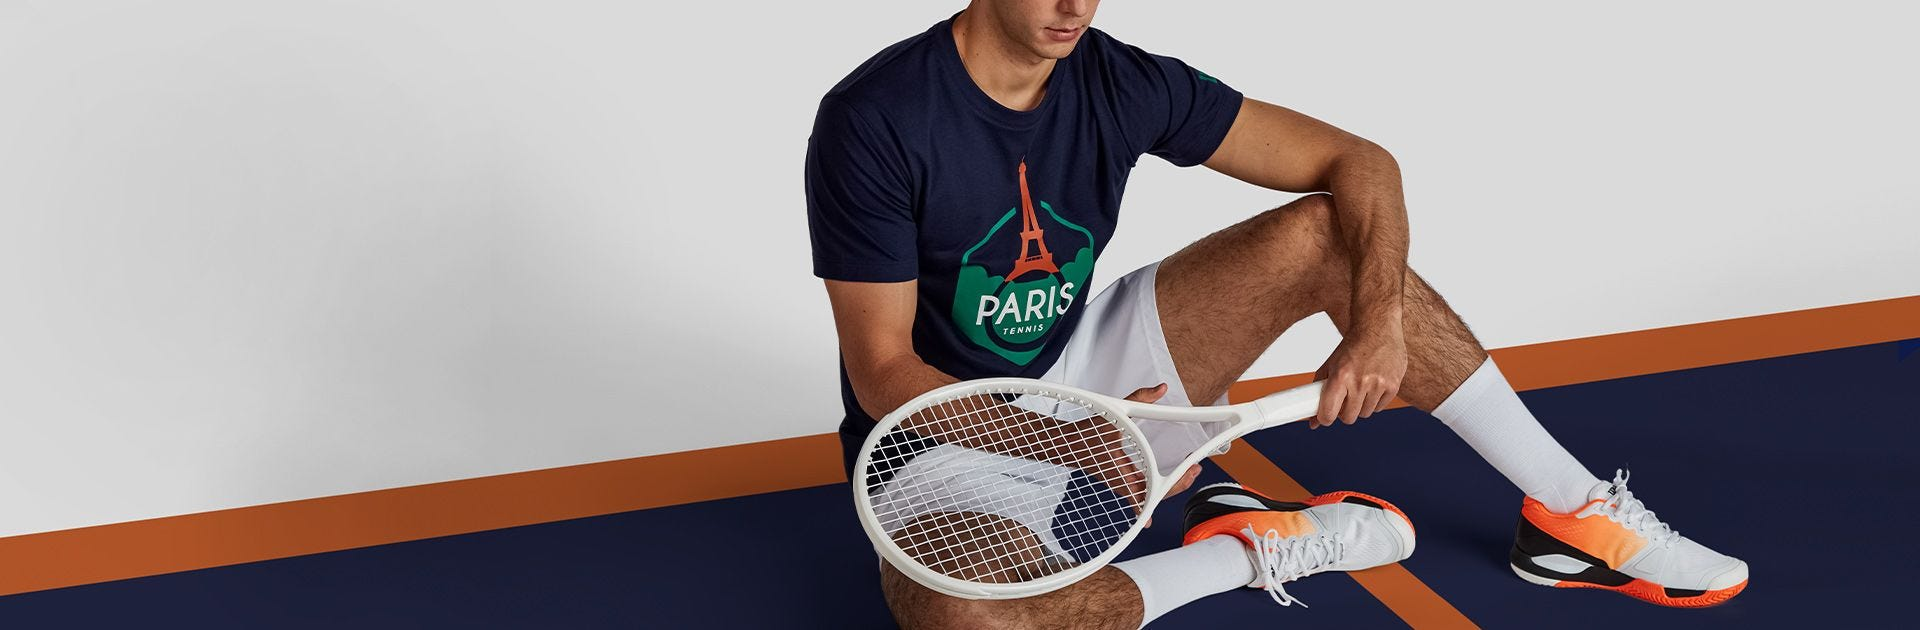 Paris collection t-shirt on tennis player